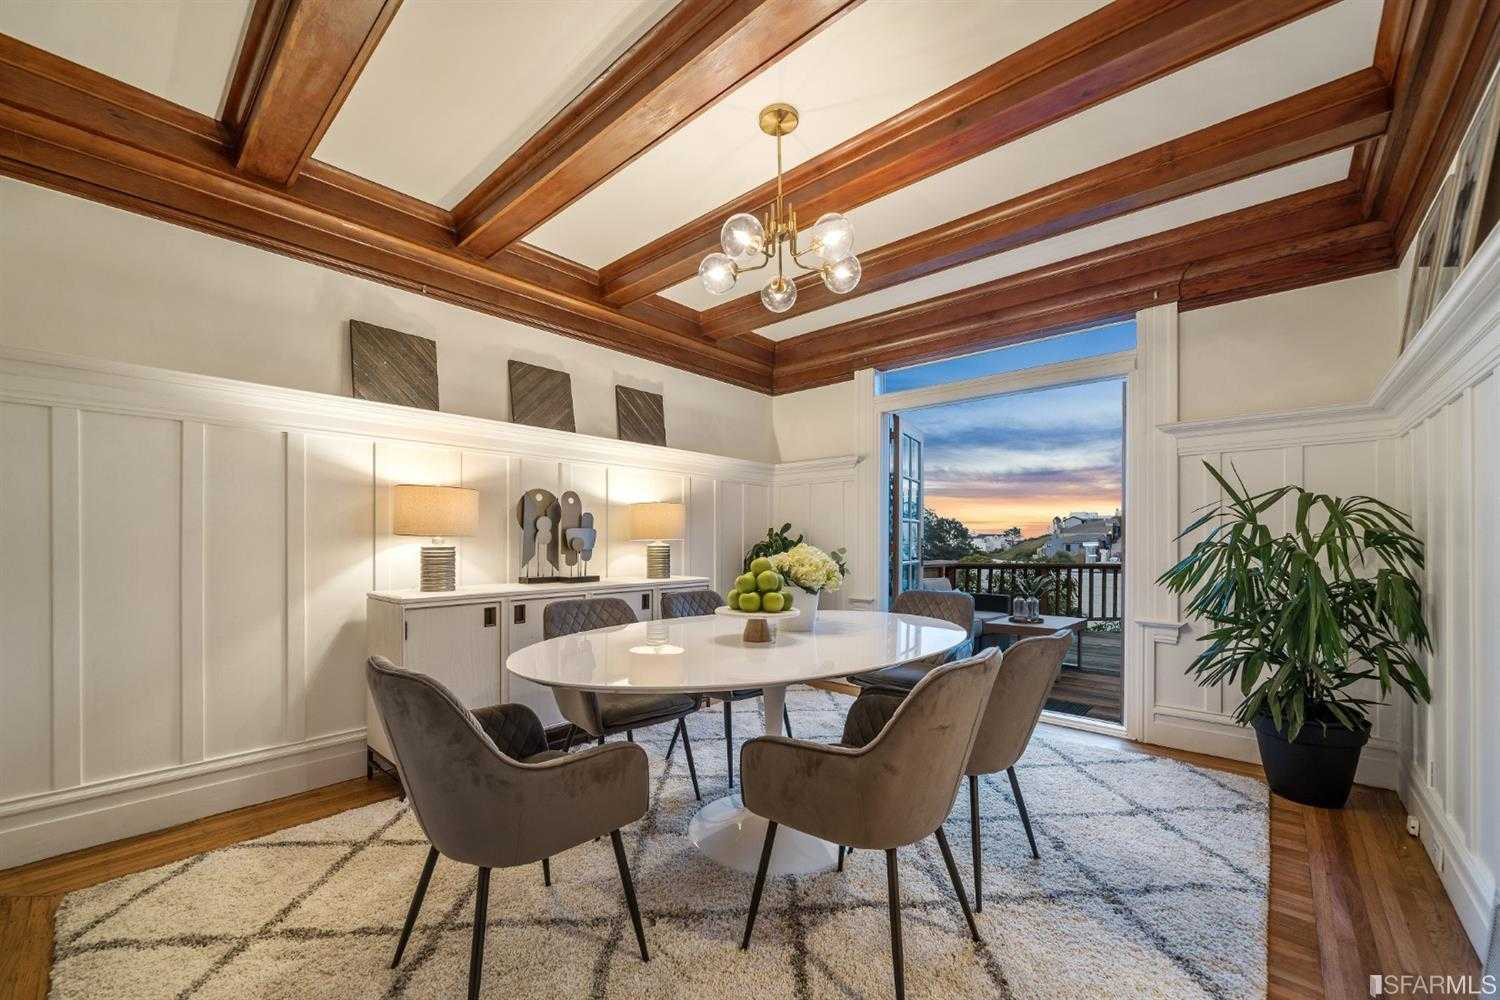 $2,195,000 - 4Br/3Ba -  for Sale in San Francisco